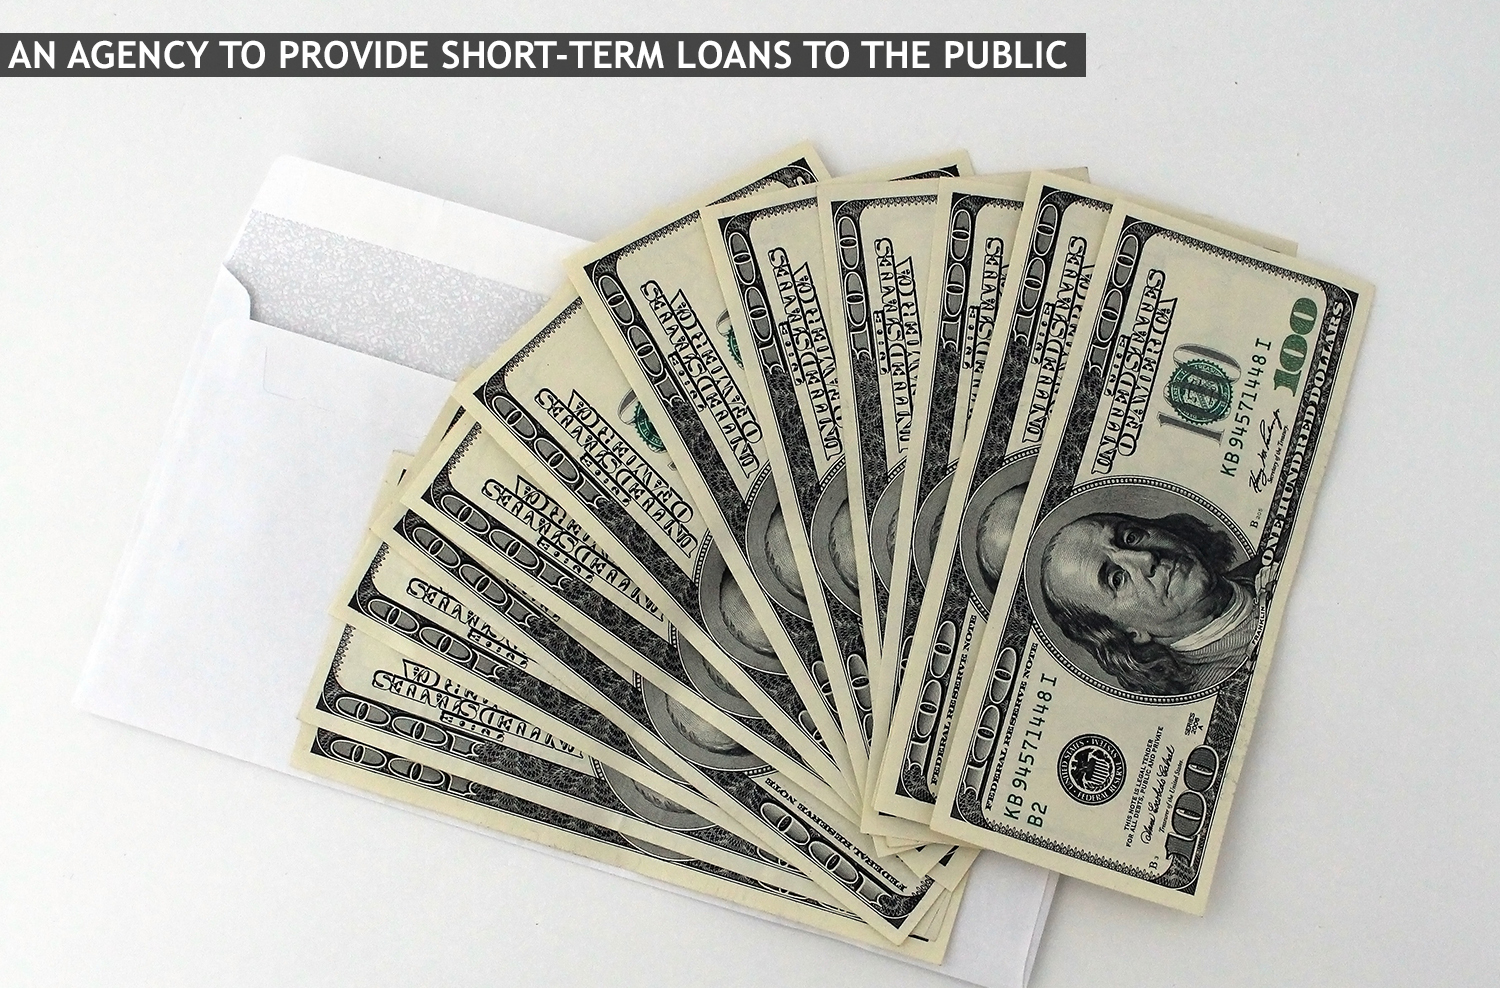 opening an agency to provide short-term loans to the public